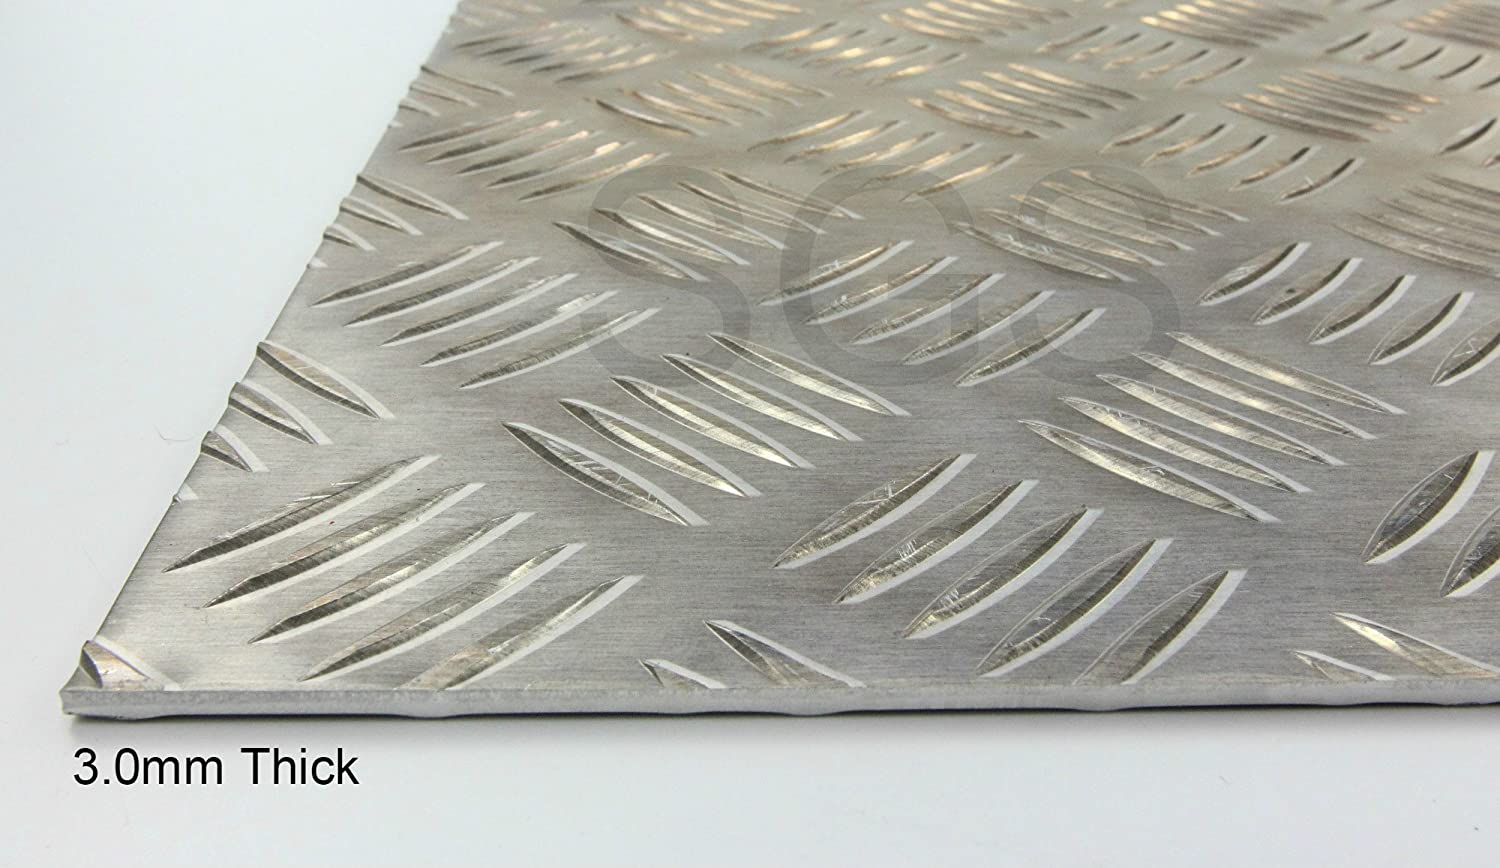 250mm x 250mm 3.0mm Thick Aluminium Chequer Plate 23 sizes to choose from